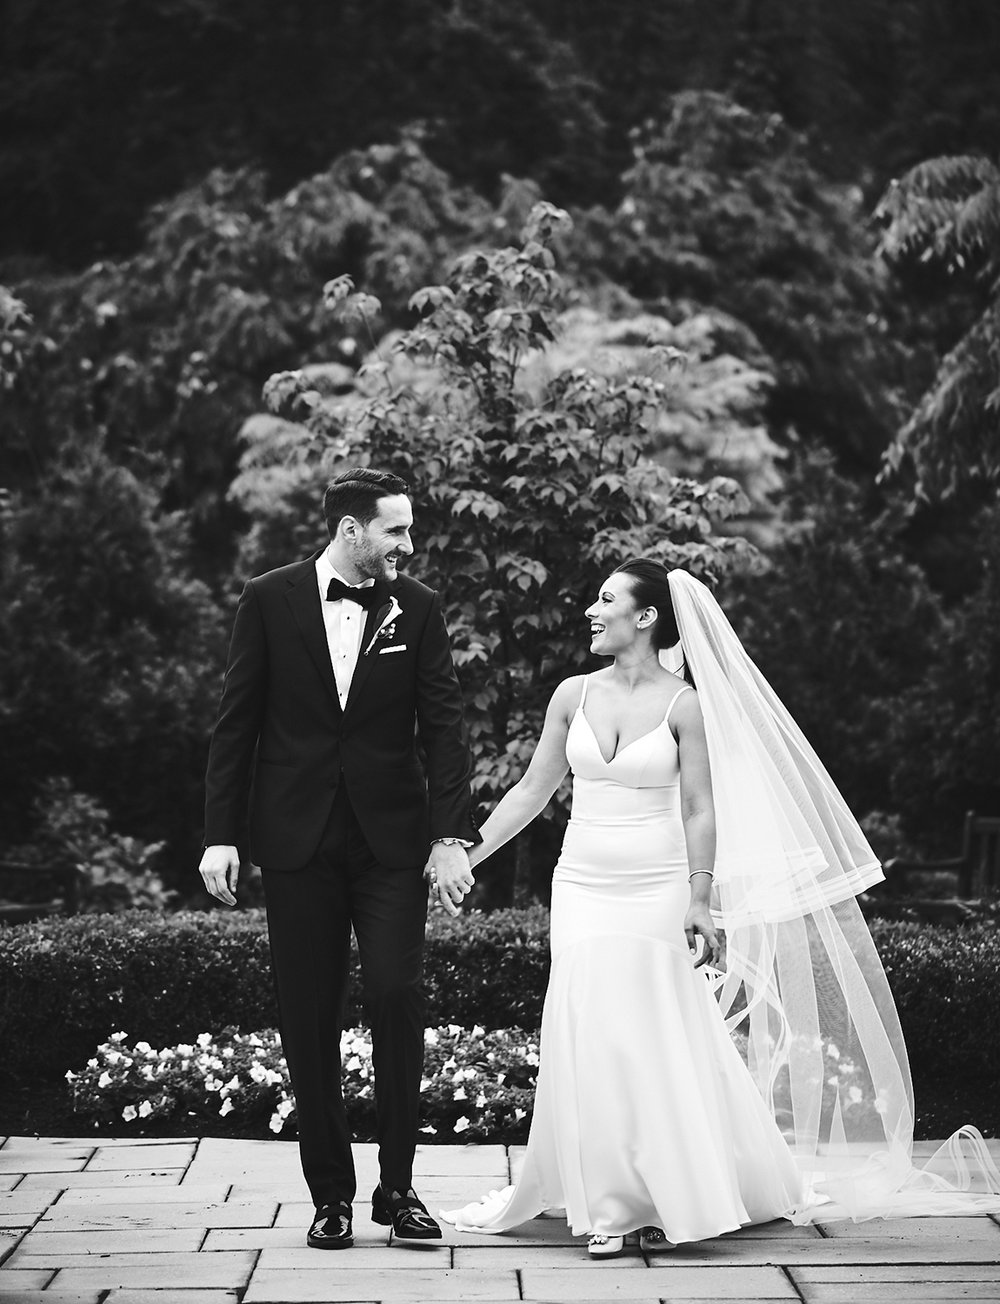 180519_PalaceatSomersetParkWeddingPhotography_NJWeddingPhotographer_By_BriJohnsonWeddings_0060.jpg